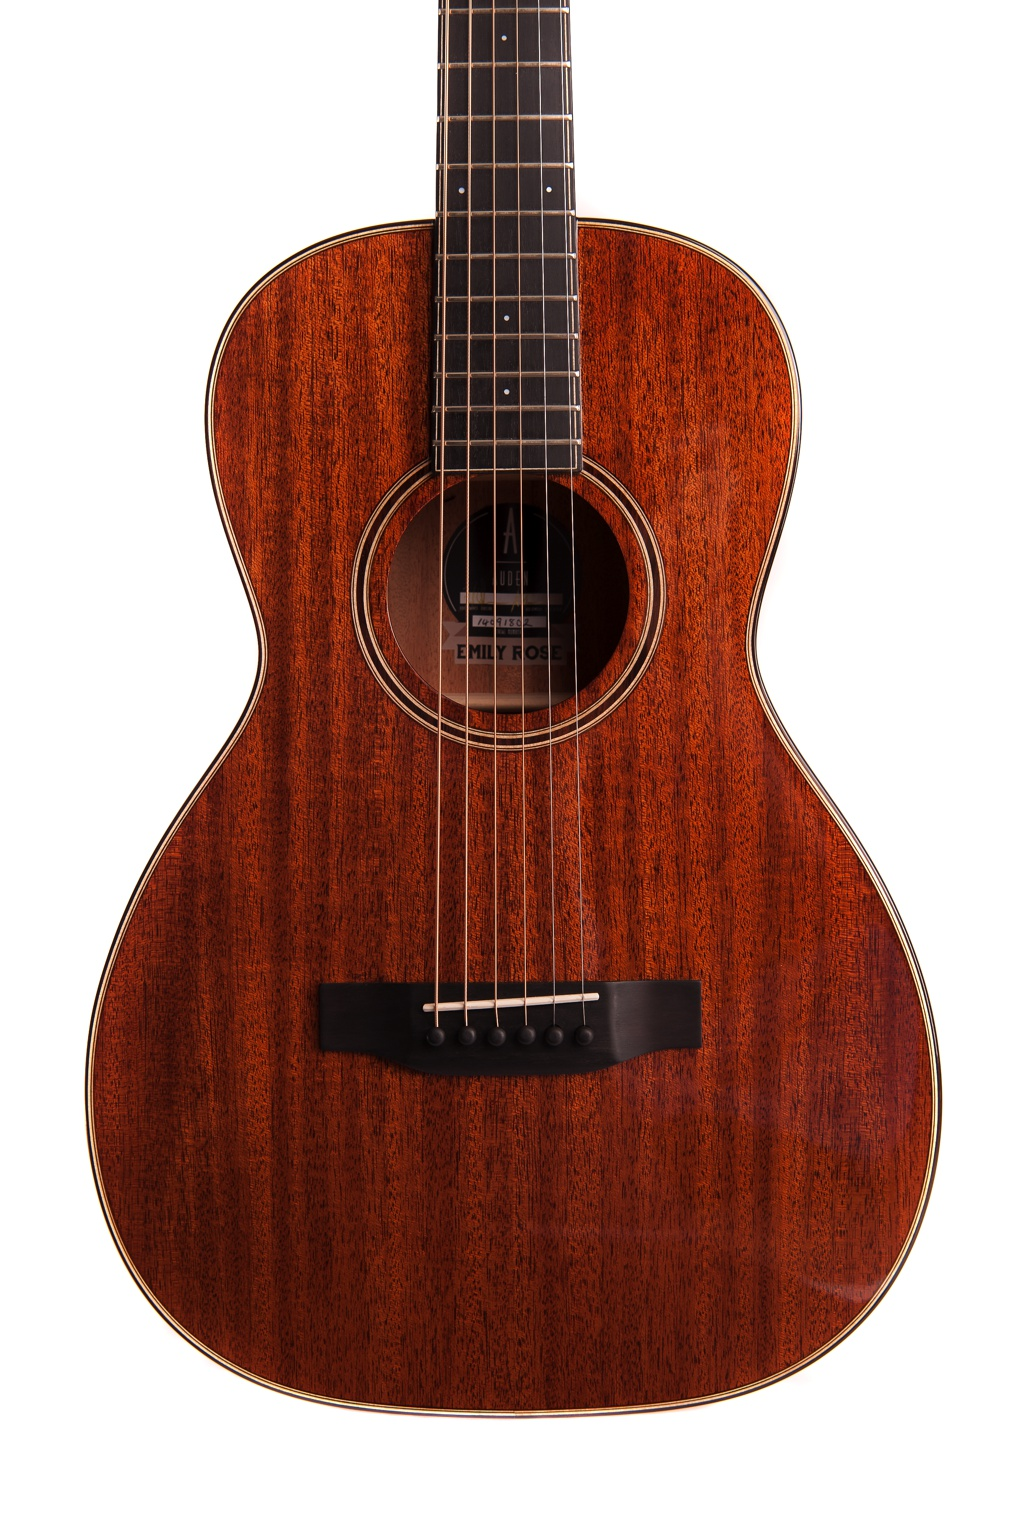 emily rose mahogany fullbody acoustic guitar by Auden Guitars - front image